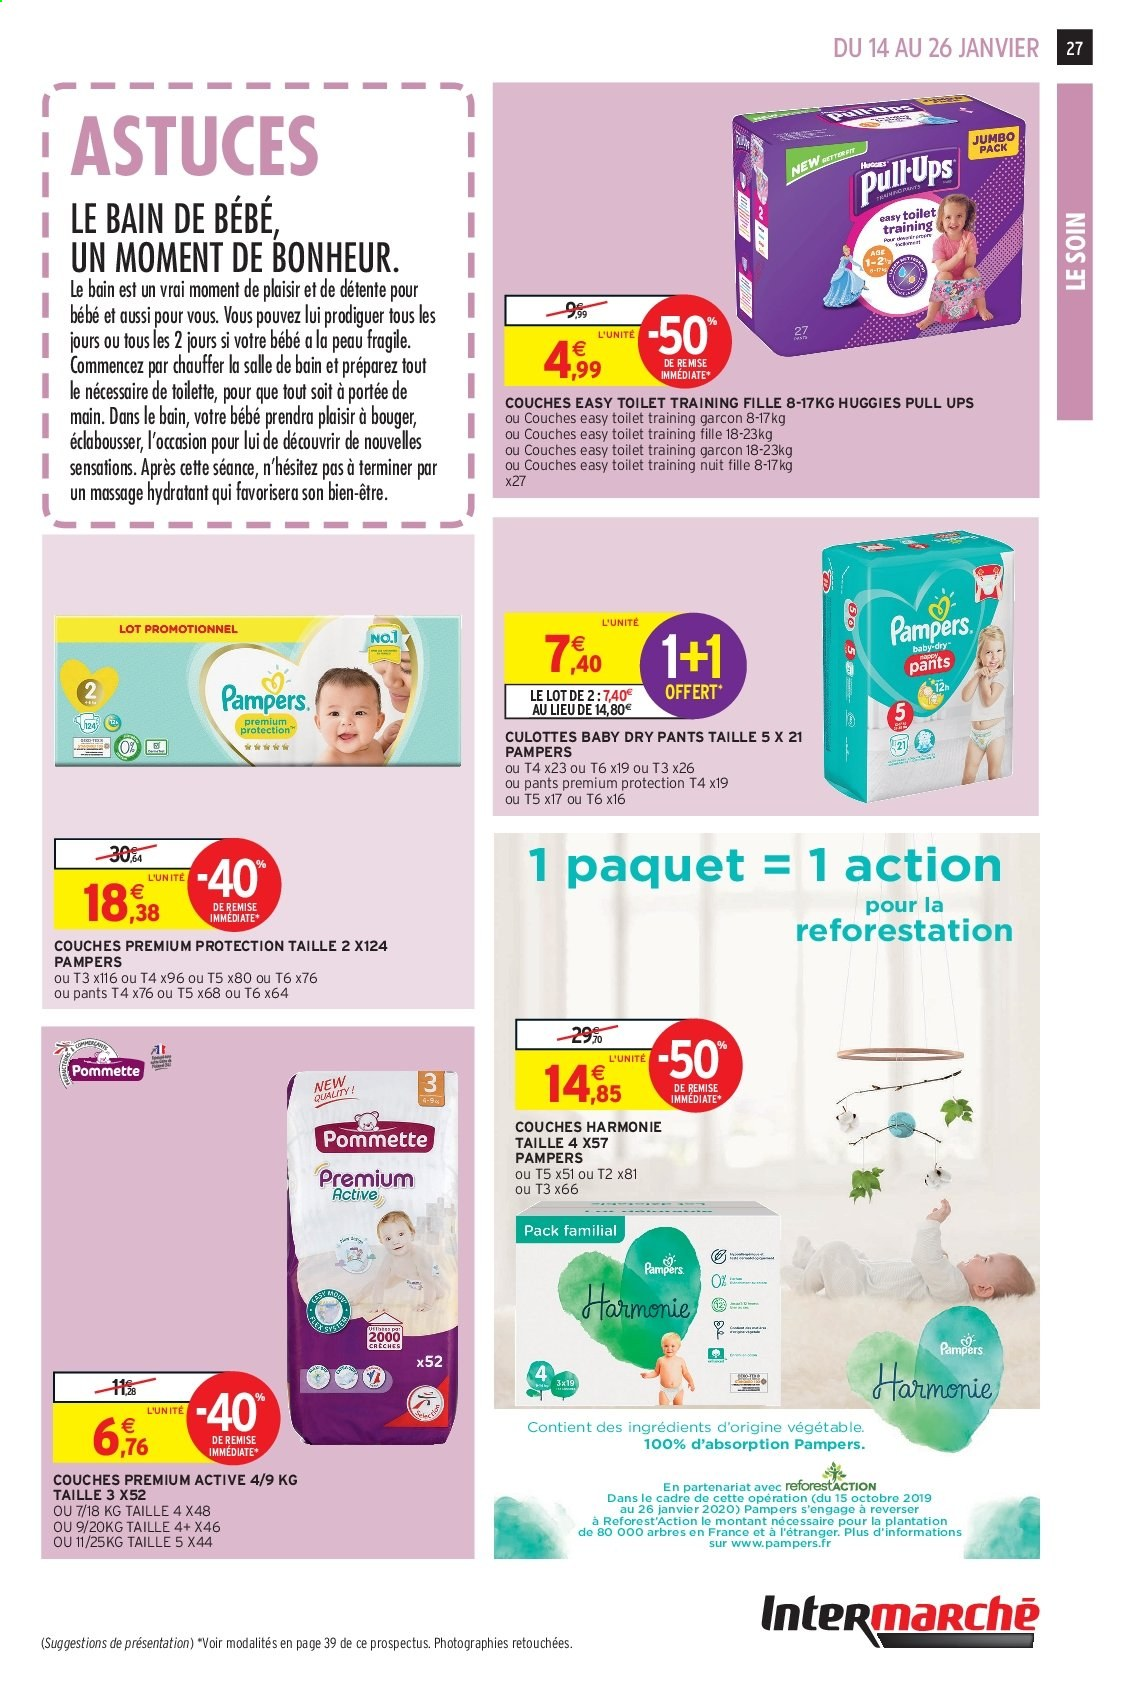 Catalogue Intermarché - 14.01.2020 - 26.01.2020. Page 27.